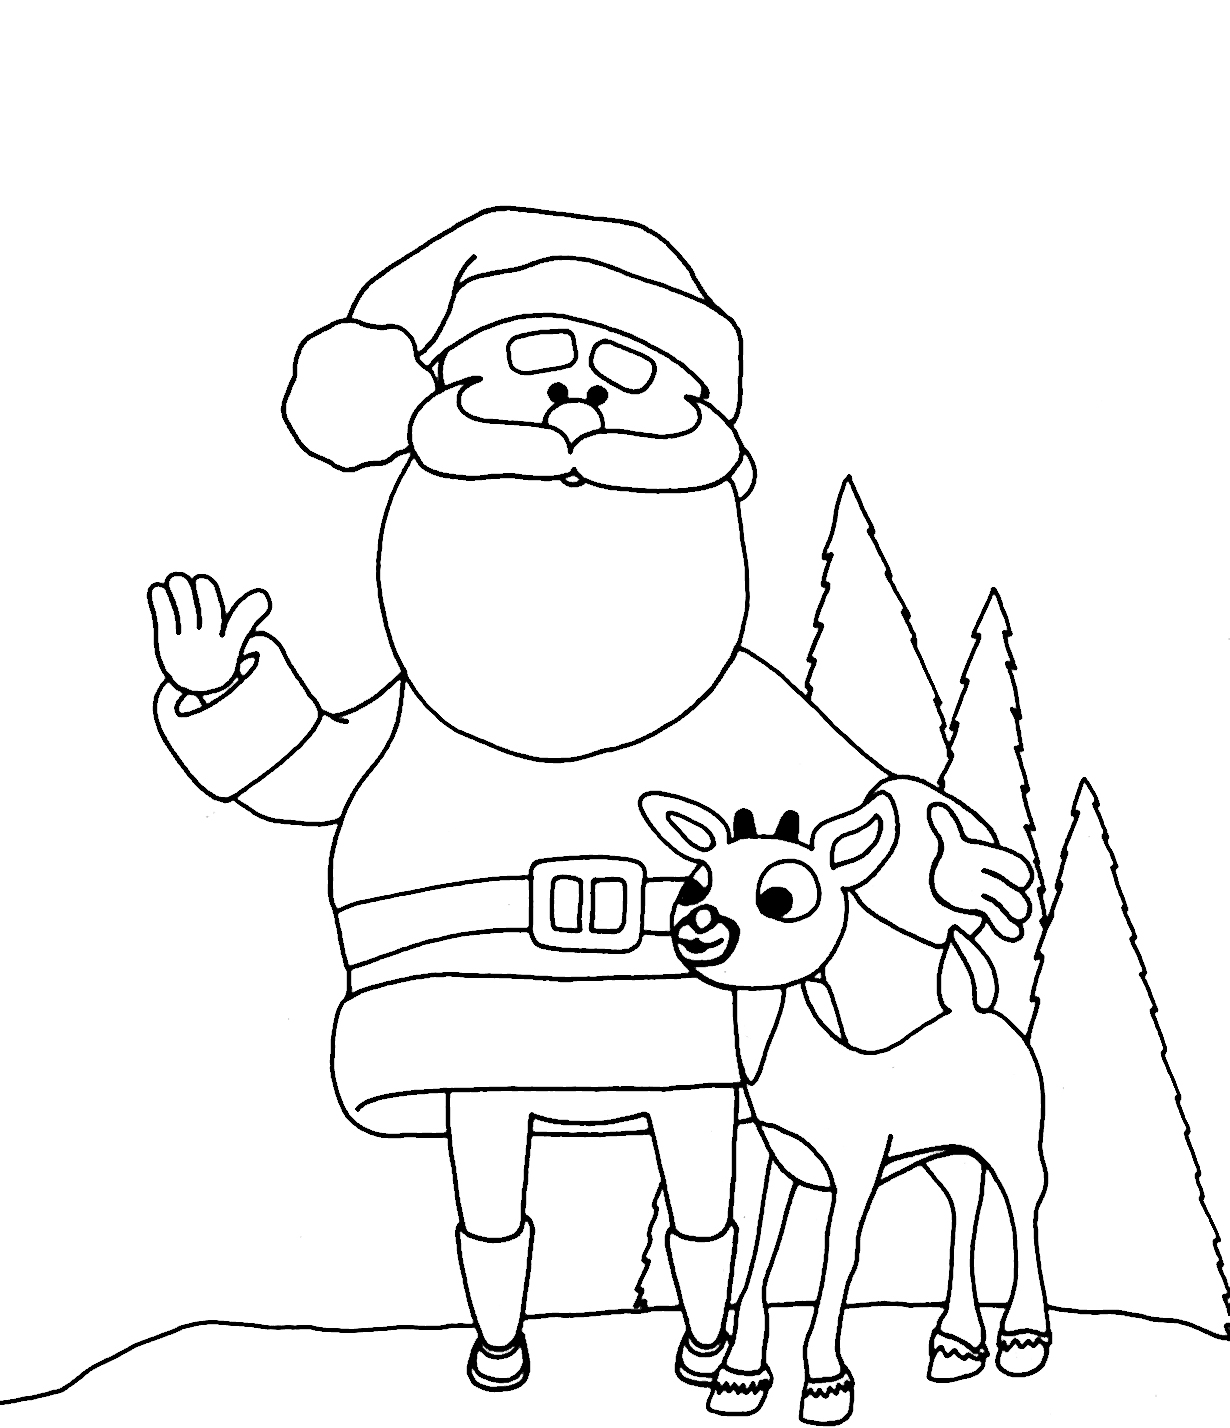 Santa Coloring In With Free Printable Claus Pages For Kids